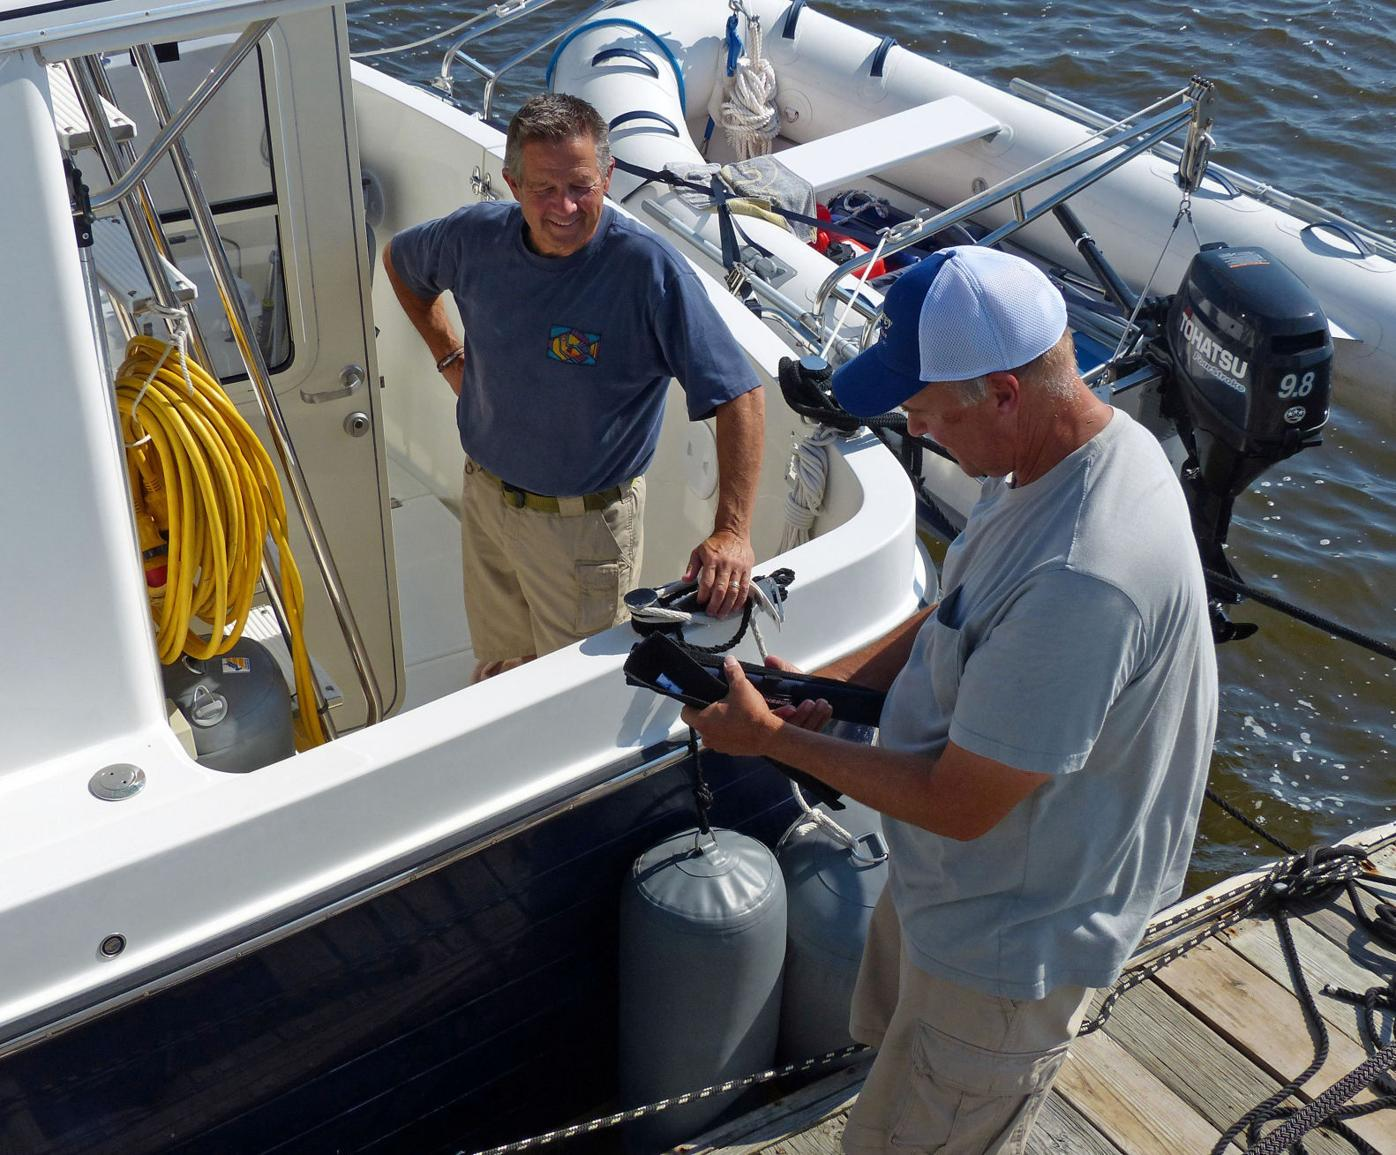 Boaters share experience of a lifetime